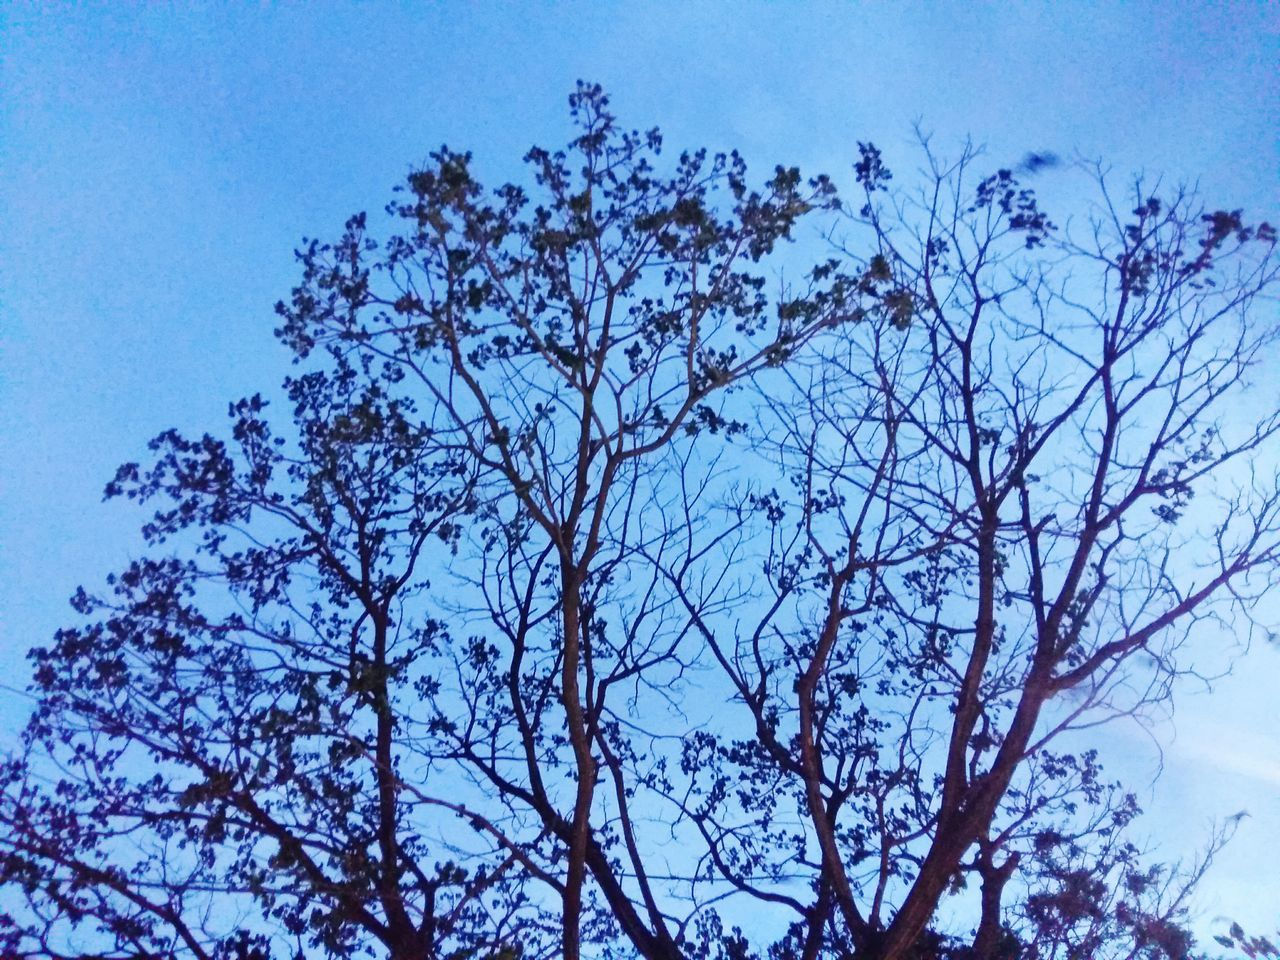 low angle view, tree, nature, branch, sky, growth, outdoors, clear sky, blue, beauty in nature, no people, day, freshness